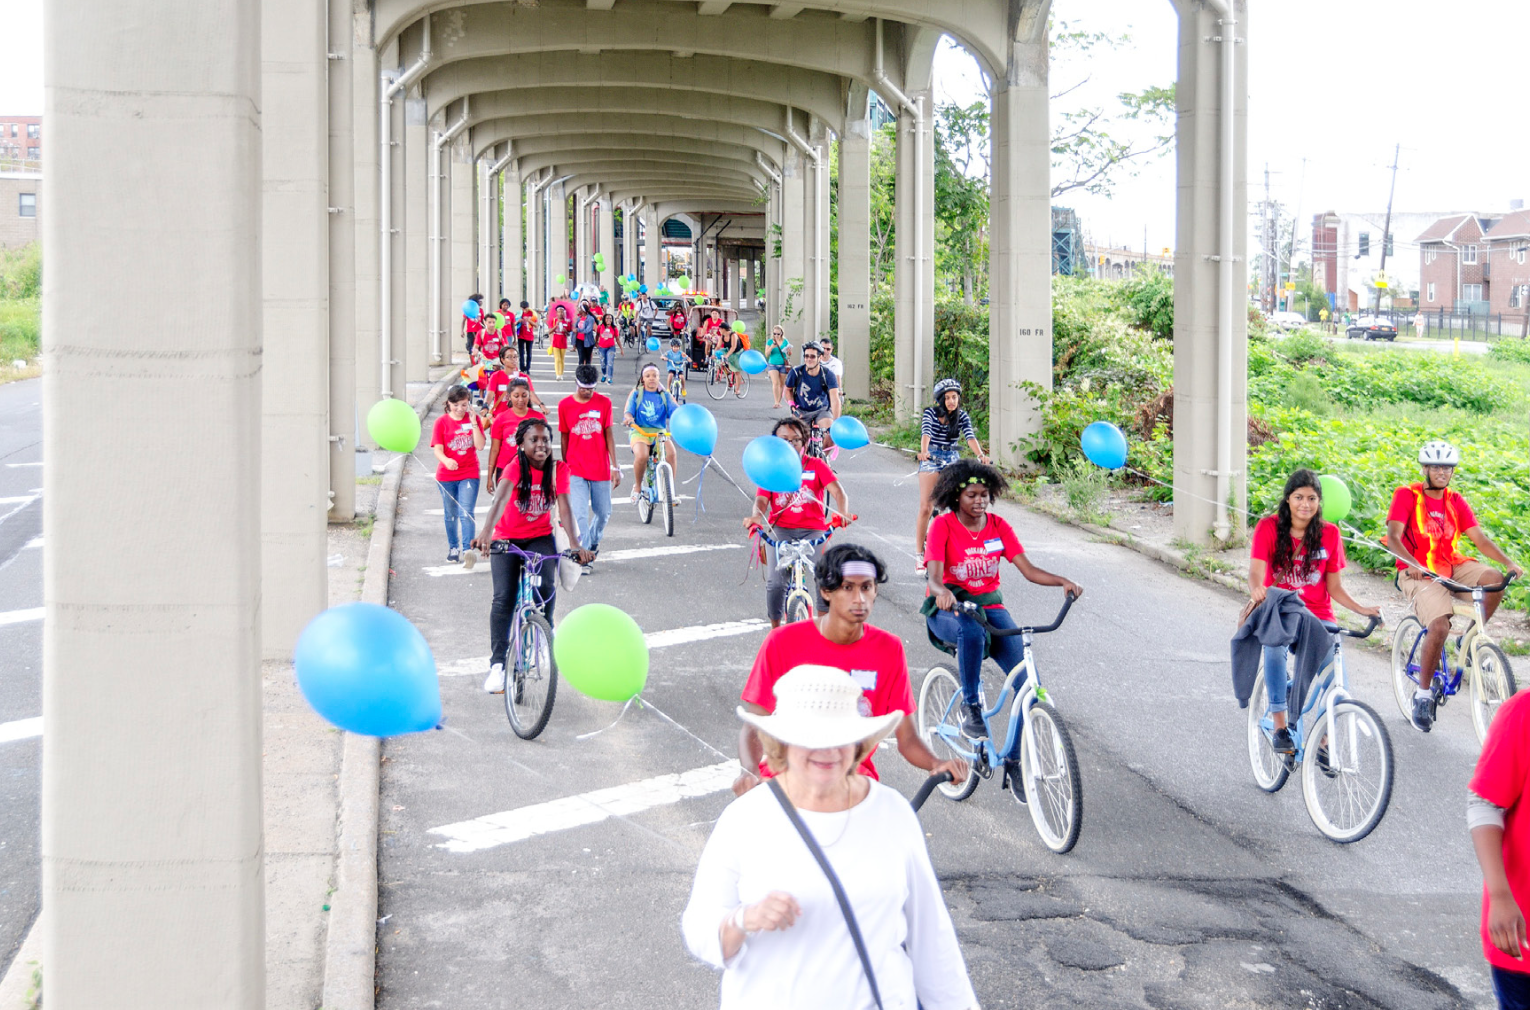 The Rockaway Bike Parade beneath the elevated train on Rockaway Freeway earlier this month. Photo: Rockaway Waterfront Alliance